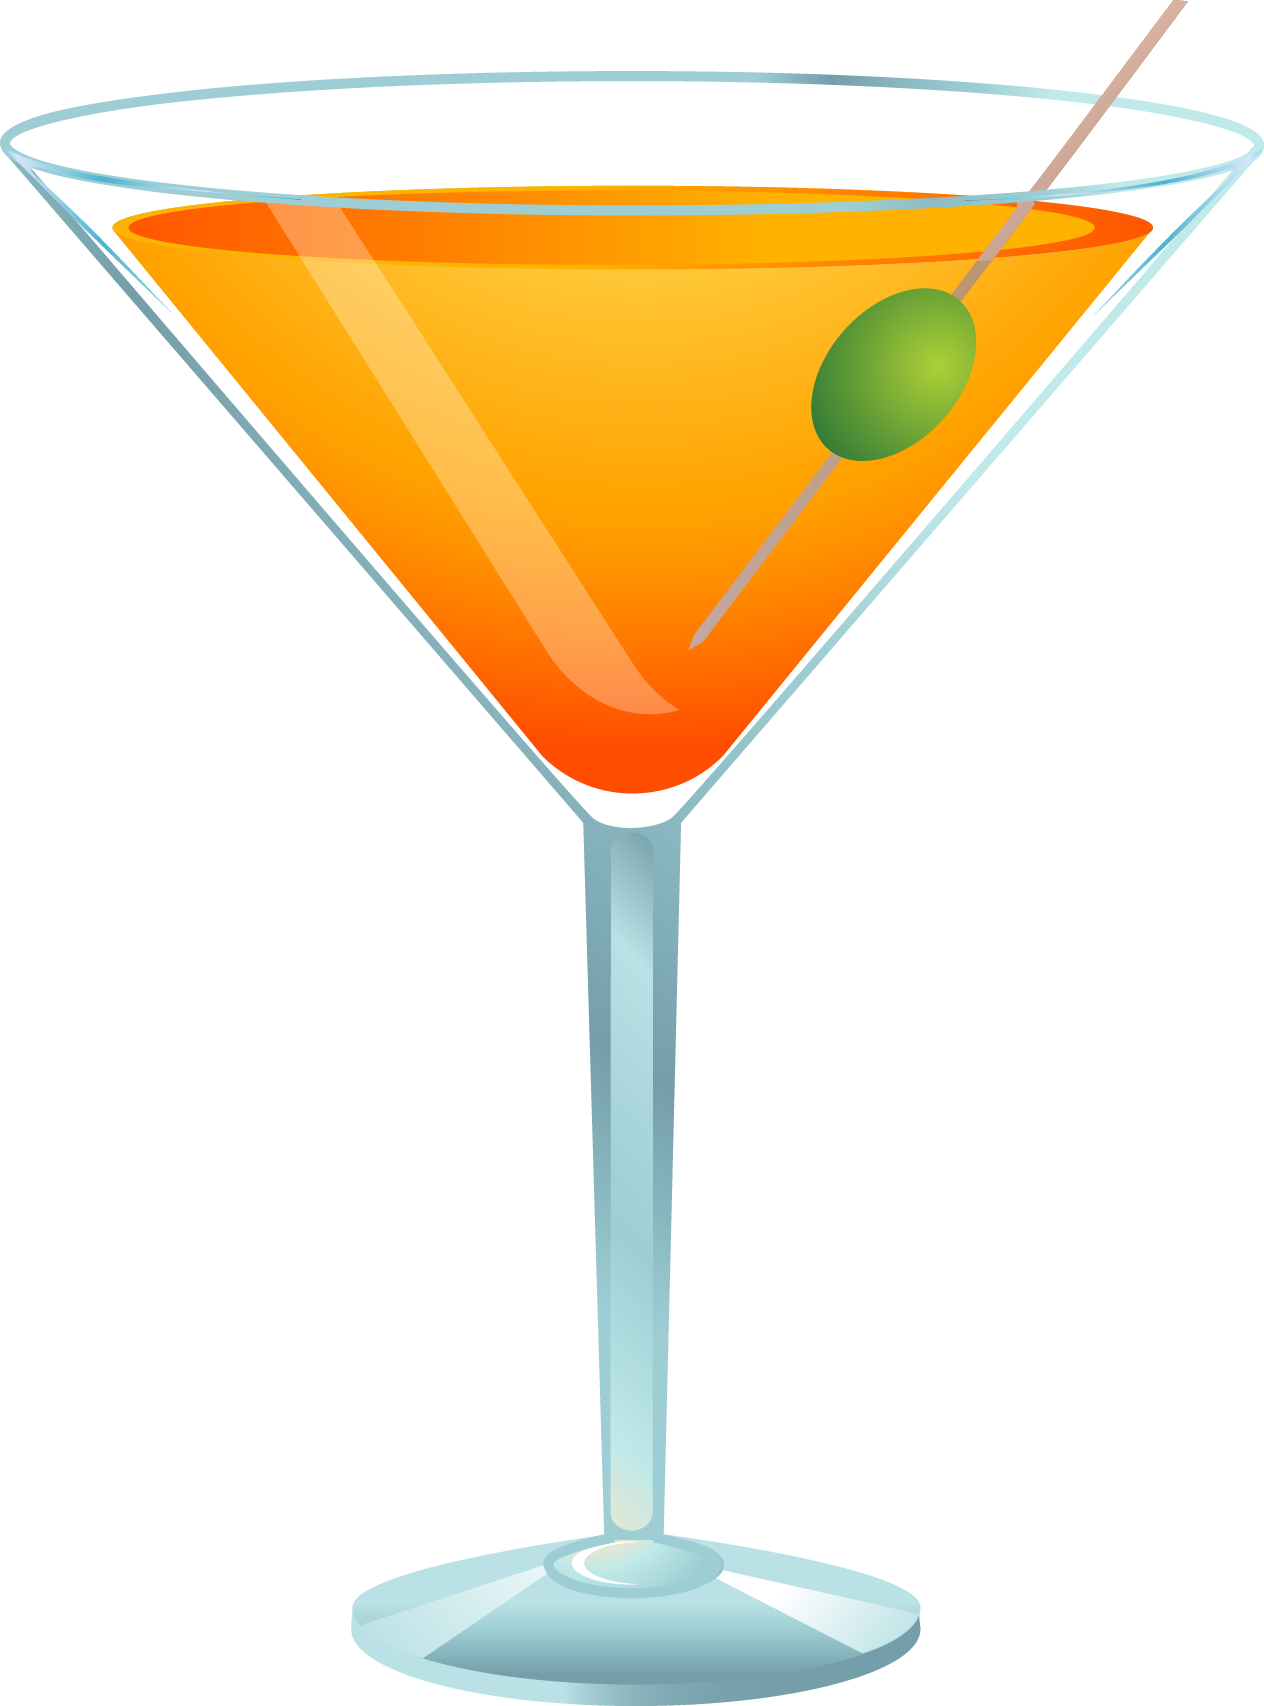 Cocktails cliparts kostenlos graphic Free to Use & Public Domain Cocktail Clip Art graphic